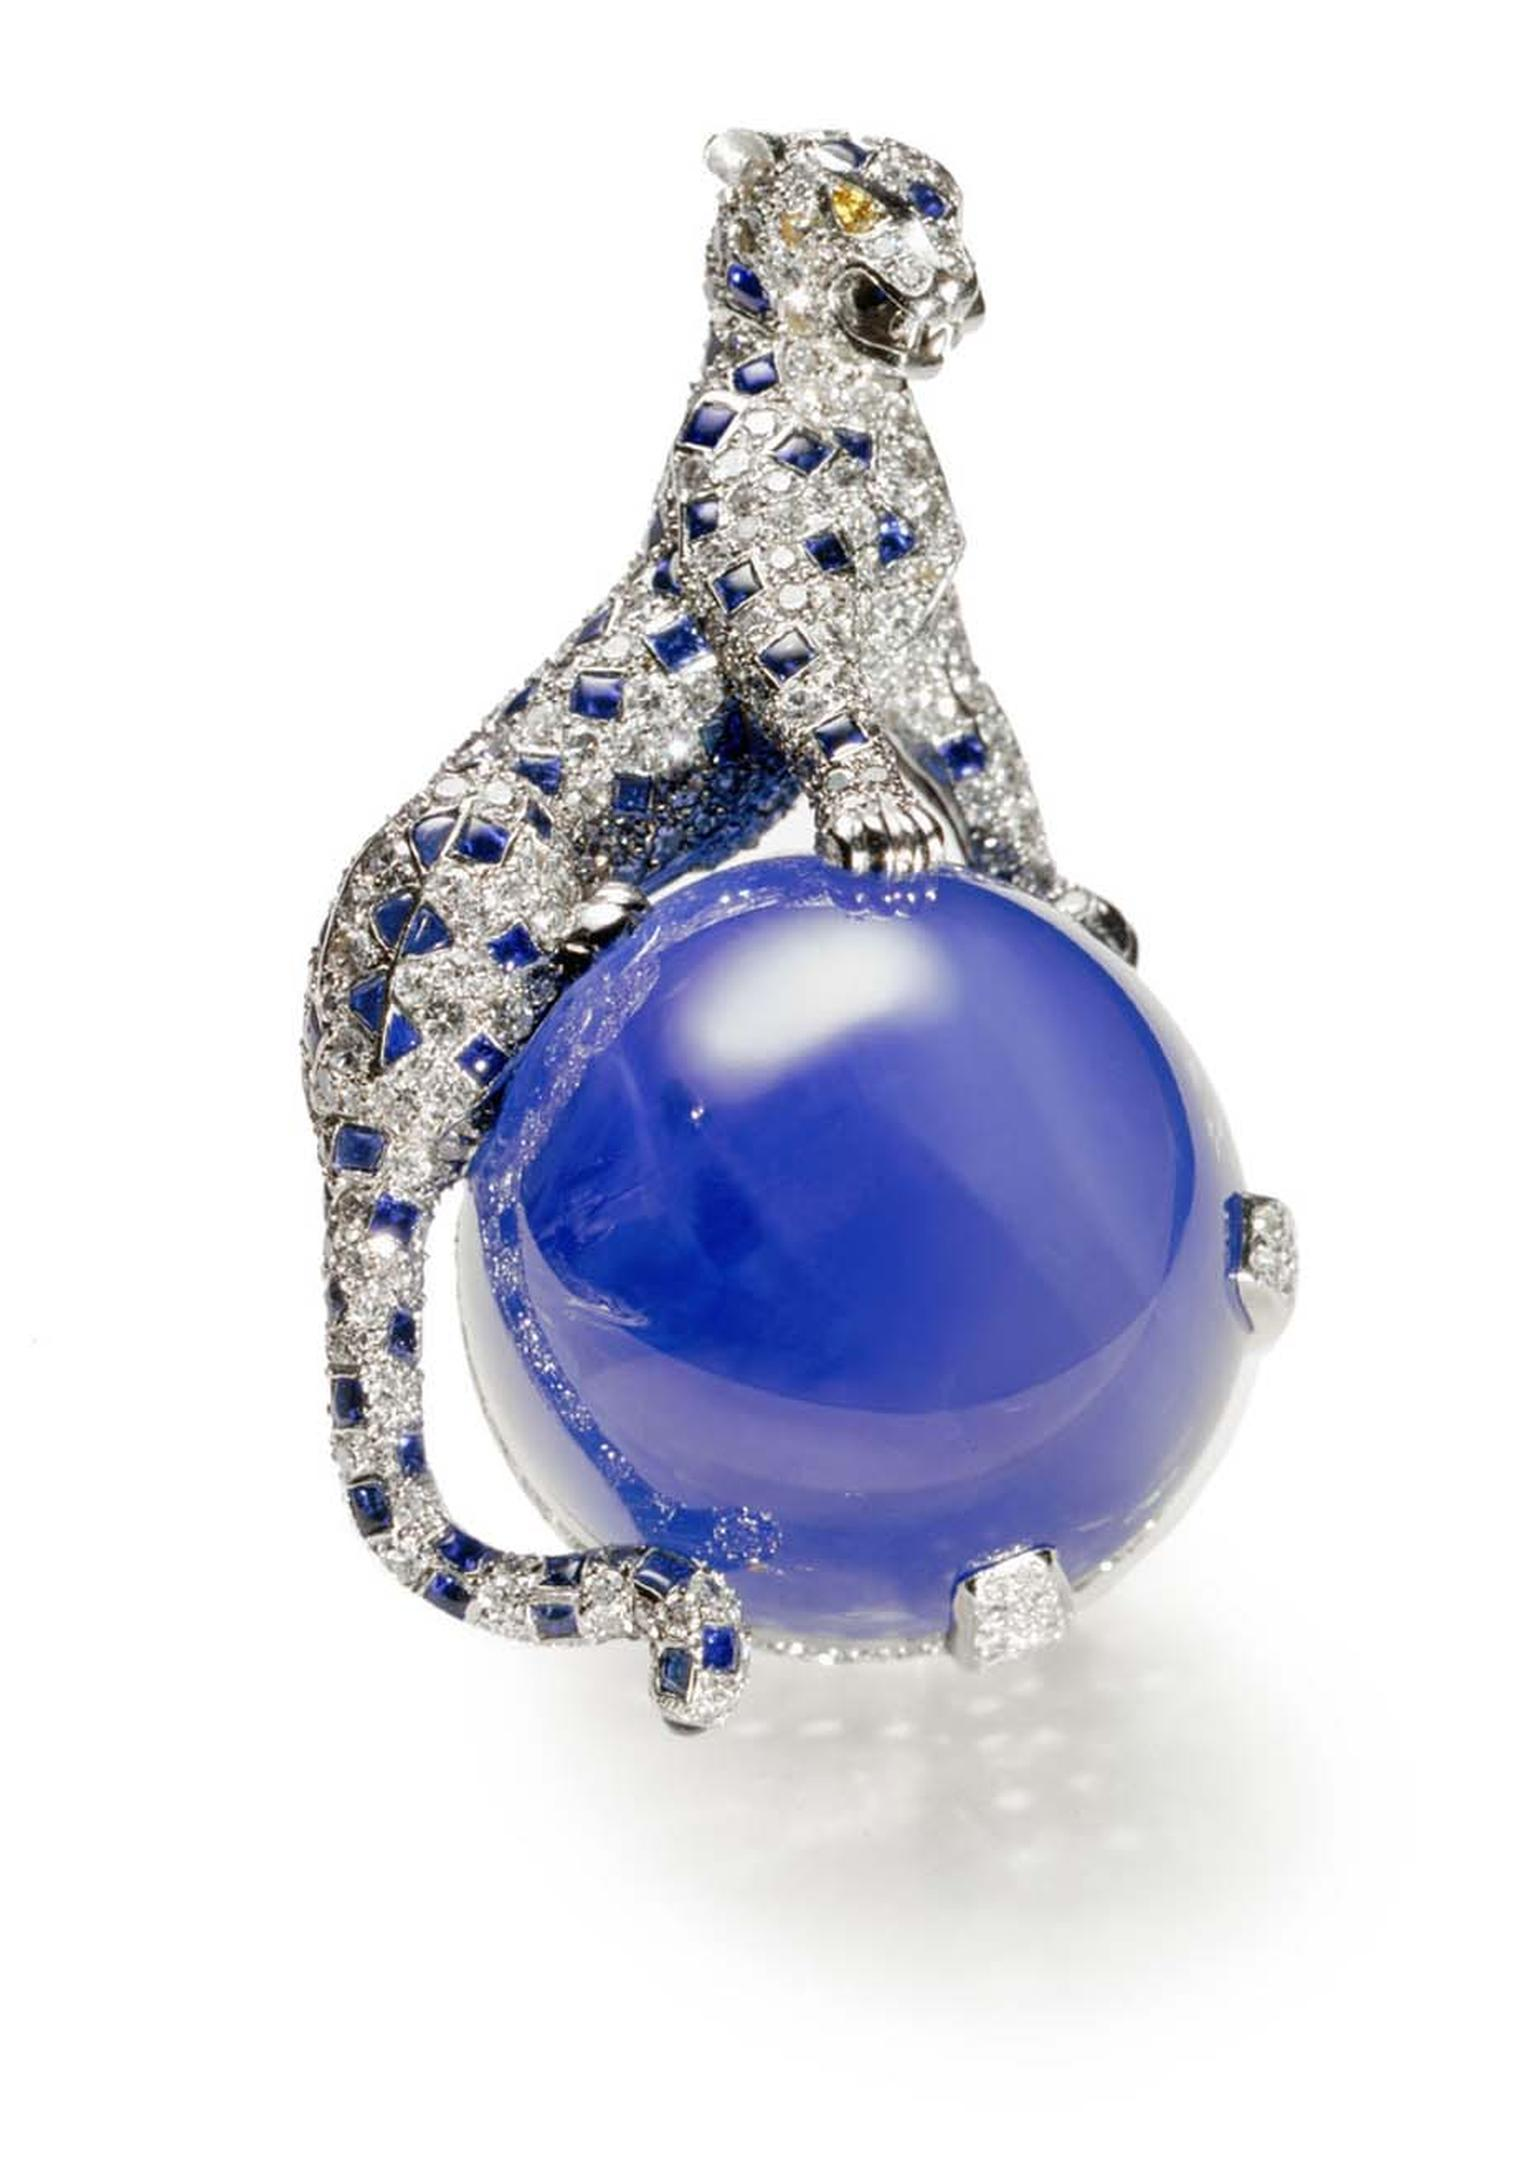 "The Duchess of Windsor's Panther brooch from 1949, which the press referred to at the time as the ""atomic bomb of jewellery"", was recently exhibited at the Cartier Style and History exhibition in Paris"